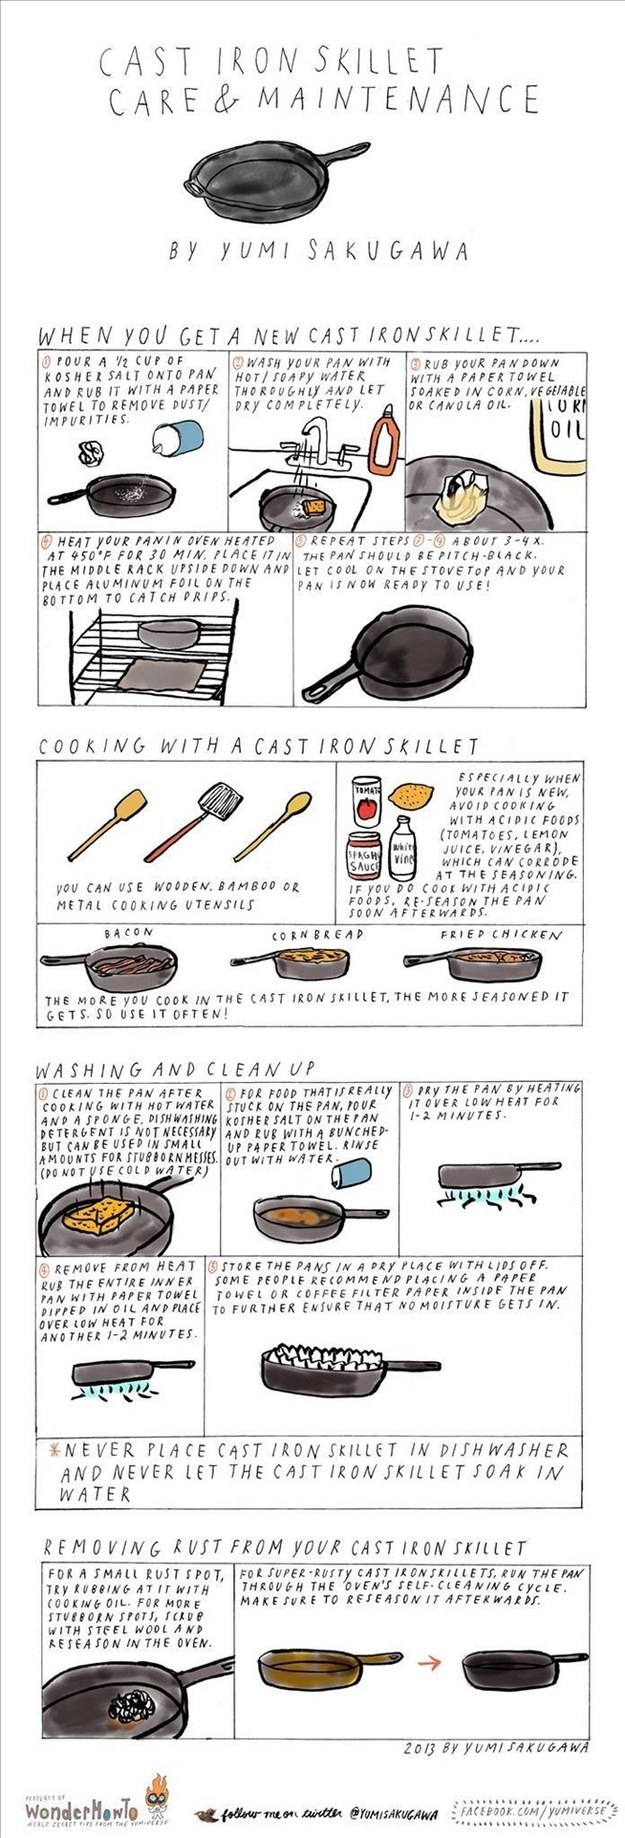 For cooking with and maintaining a cast iron skillet